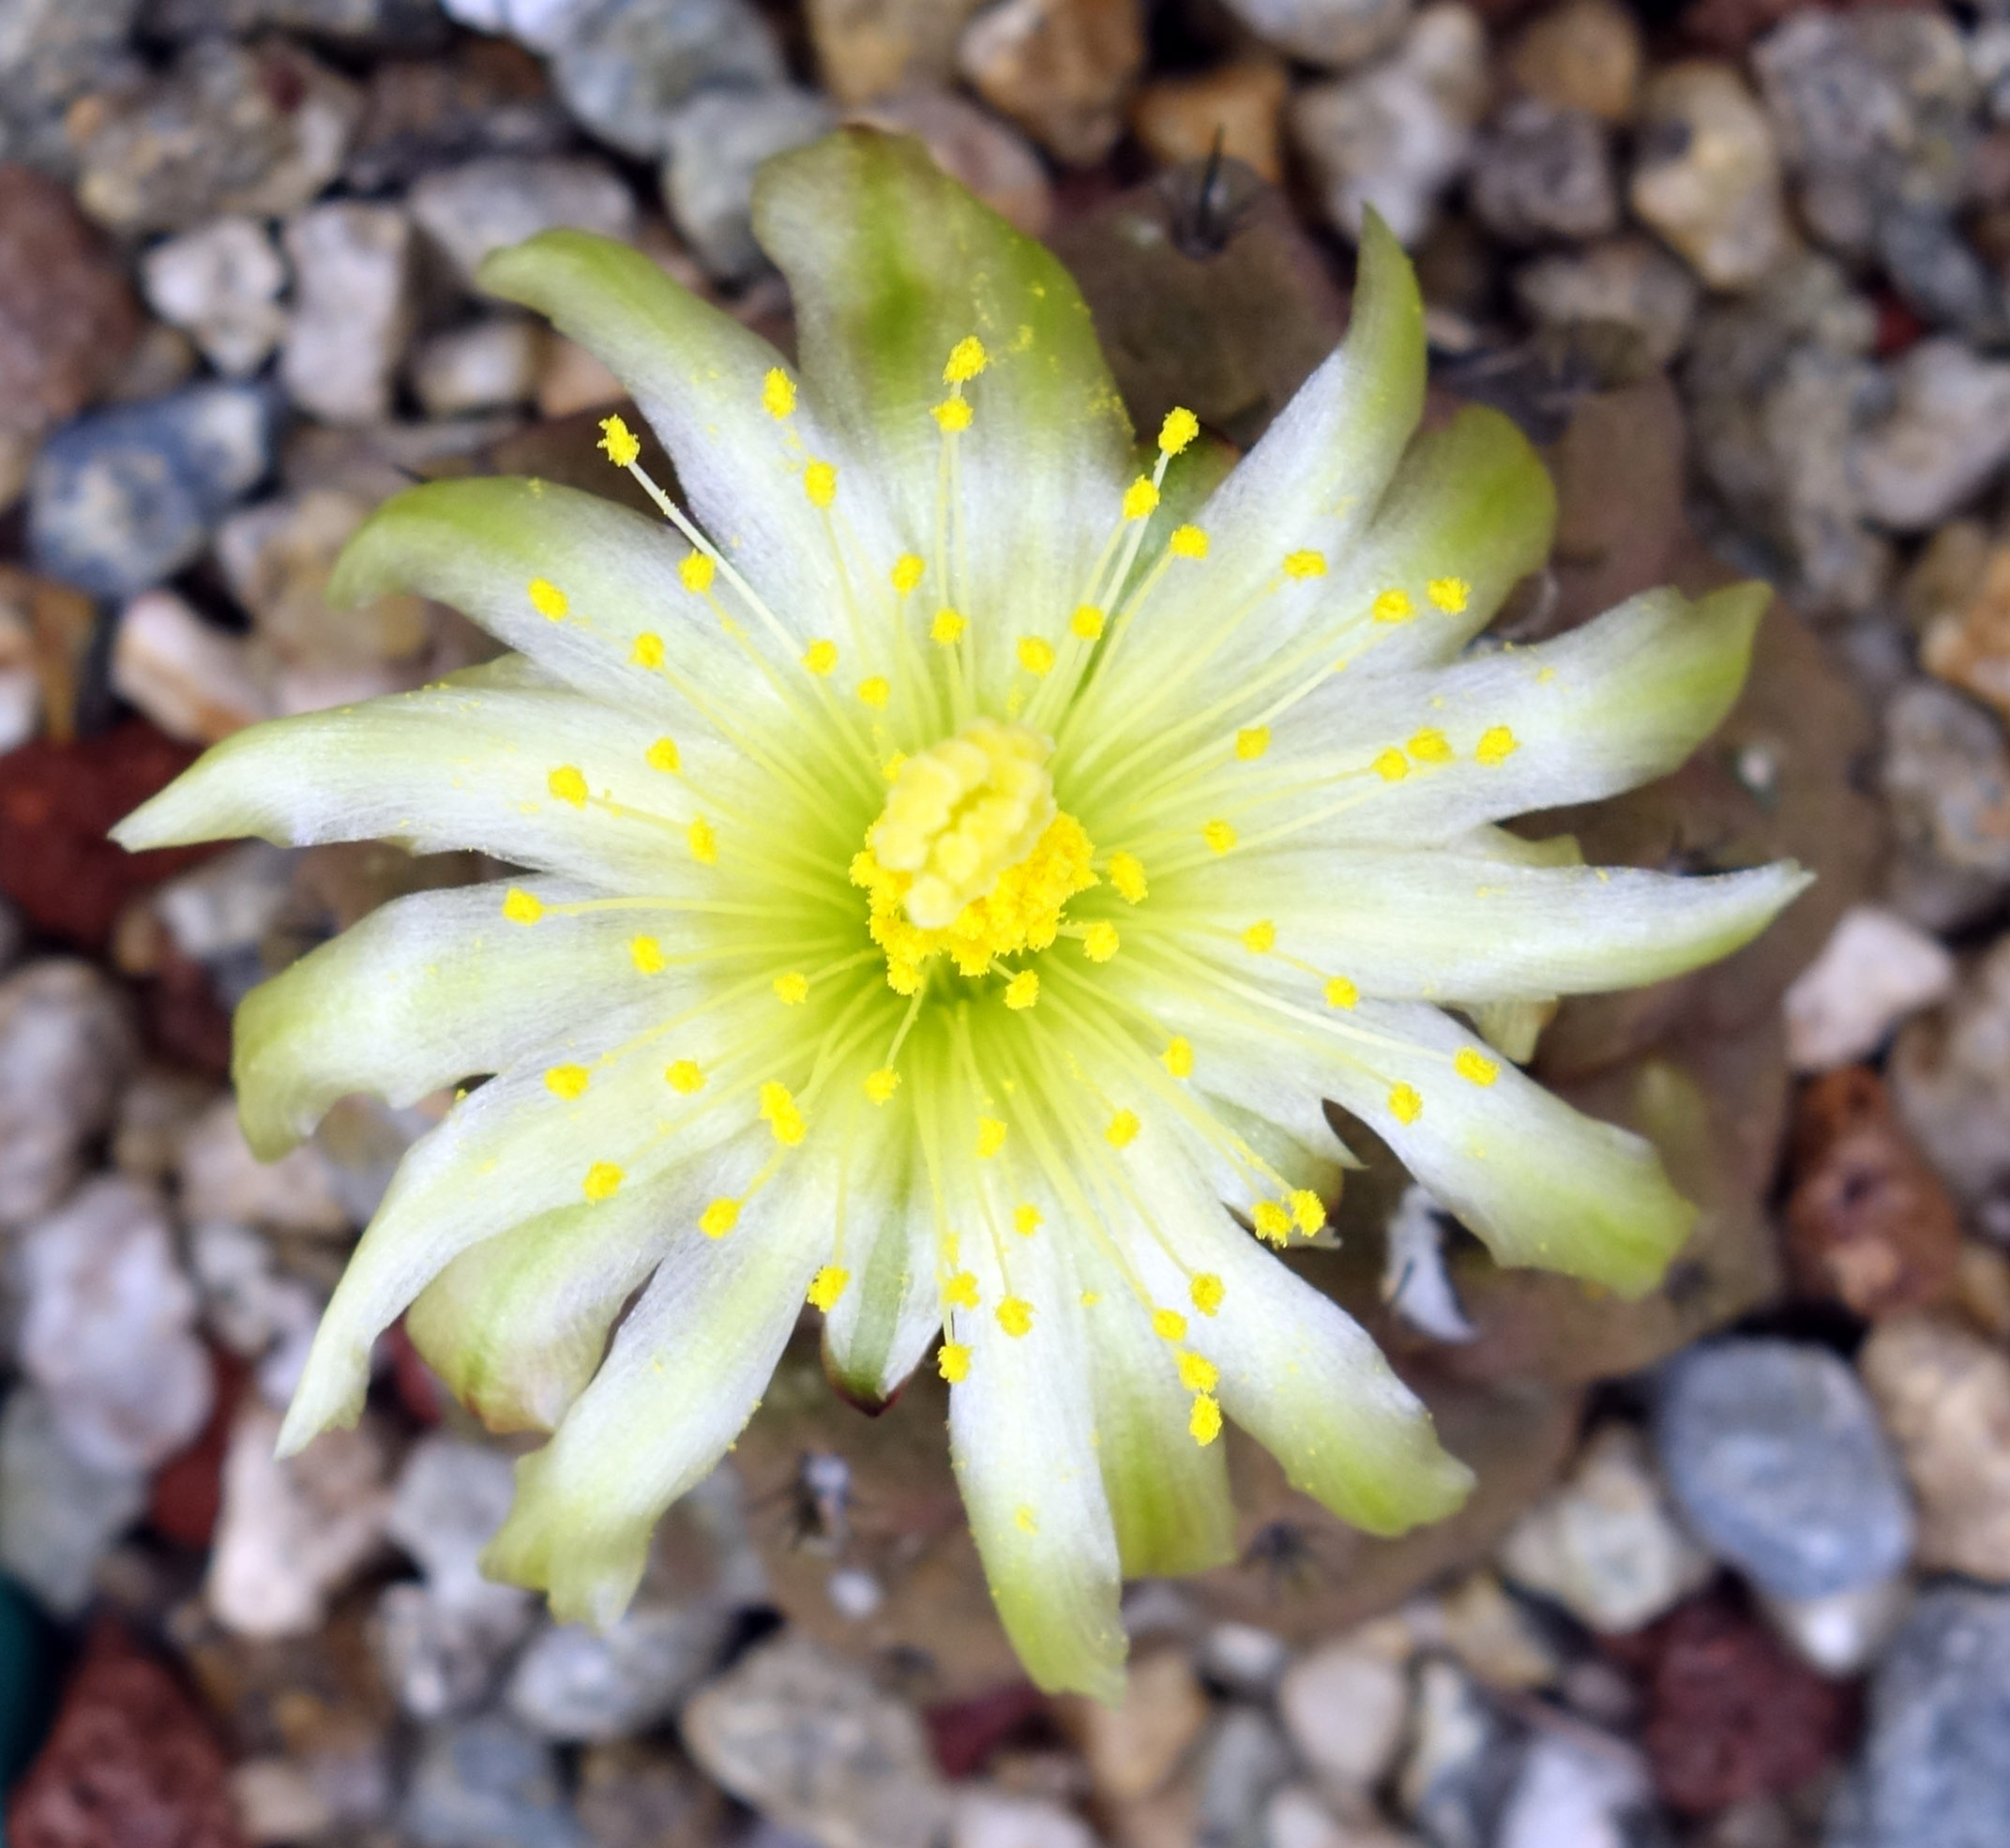 Copiapoa hypogaea flower 12-19-17.jpg